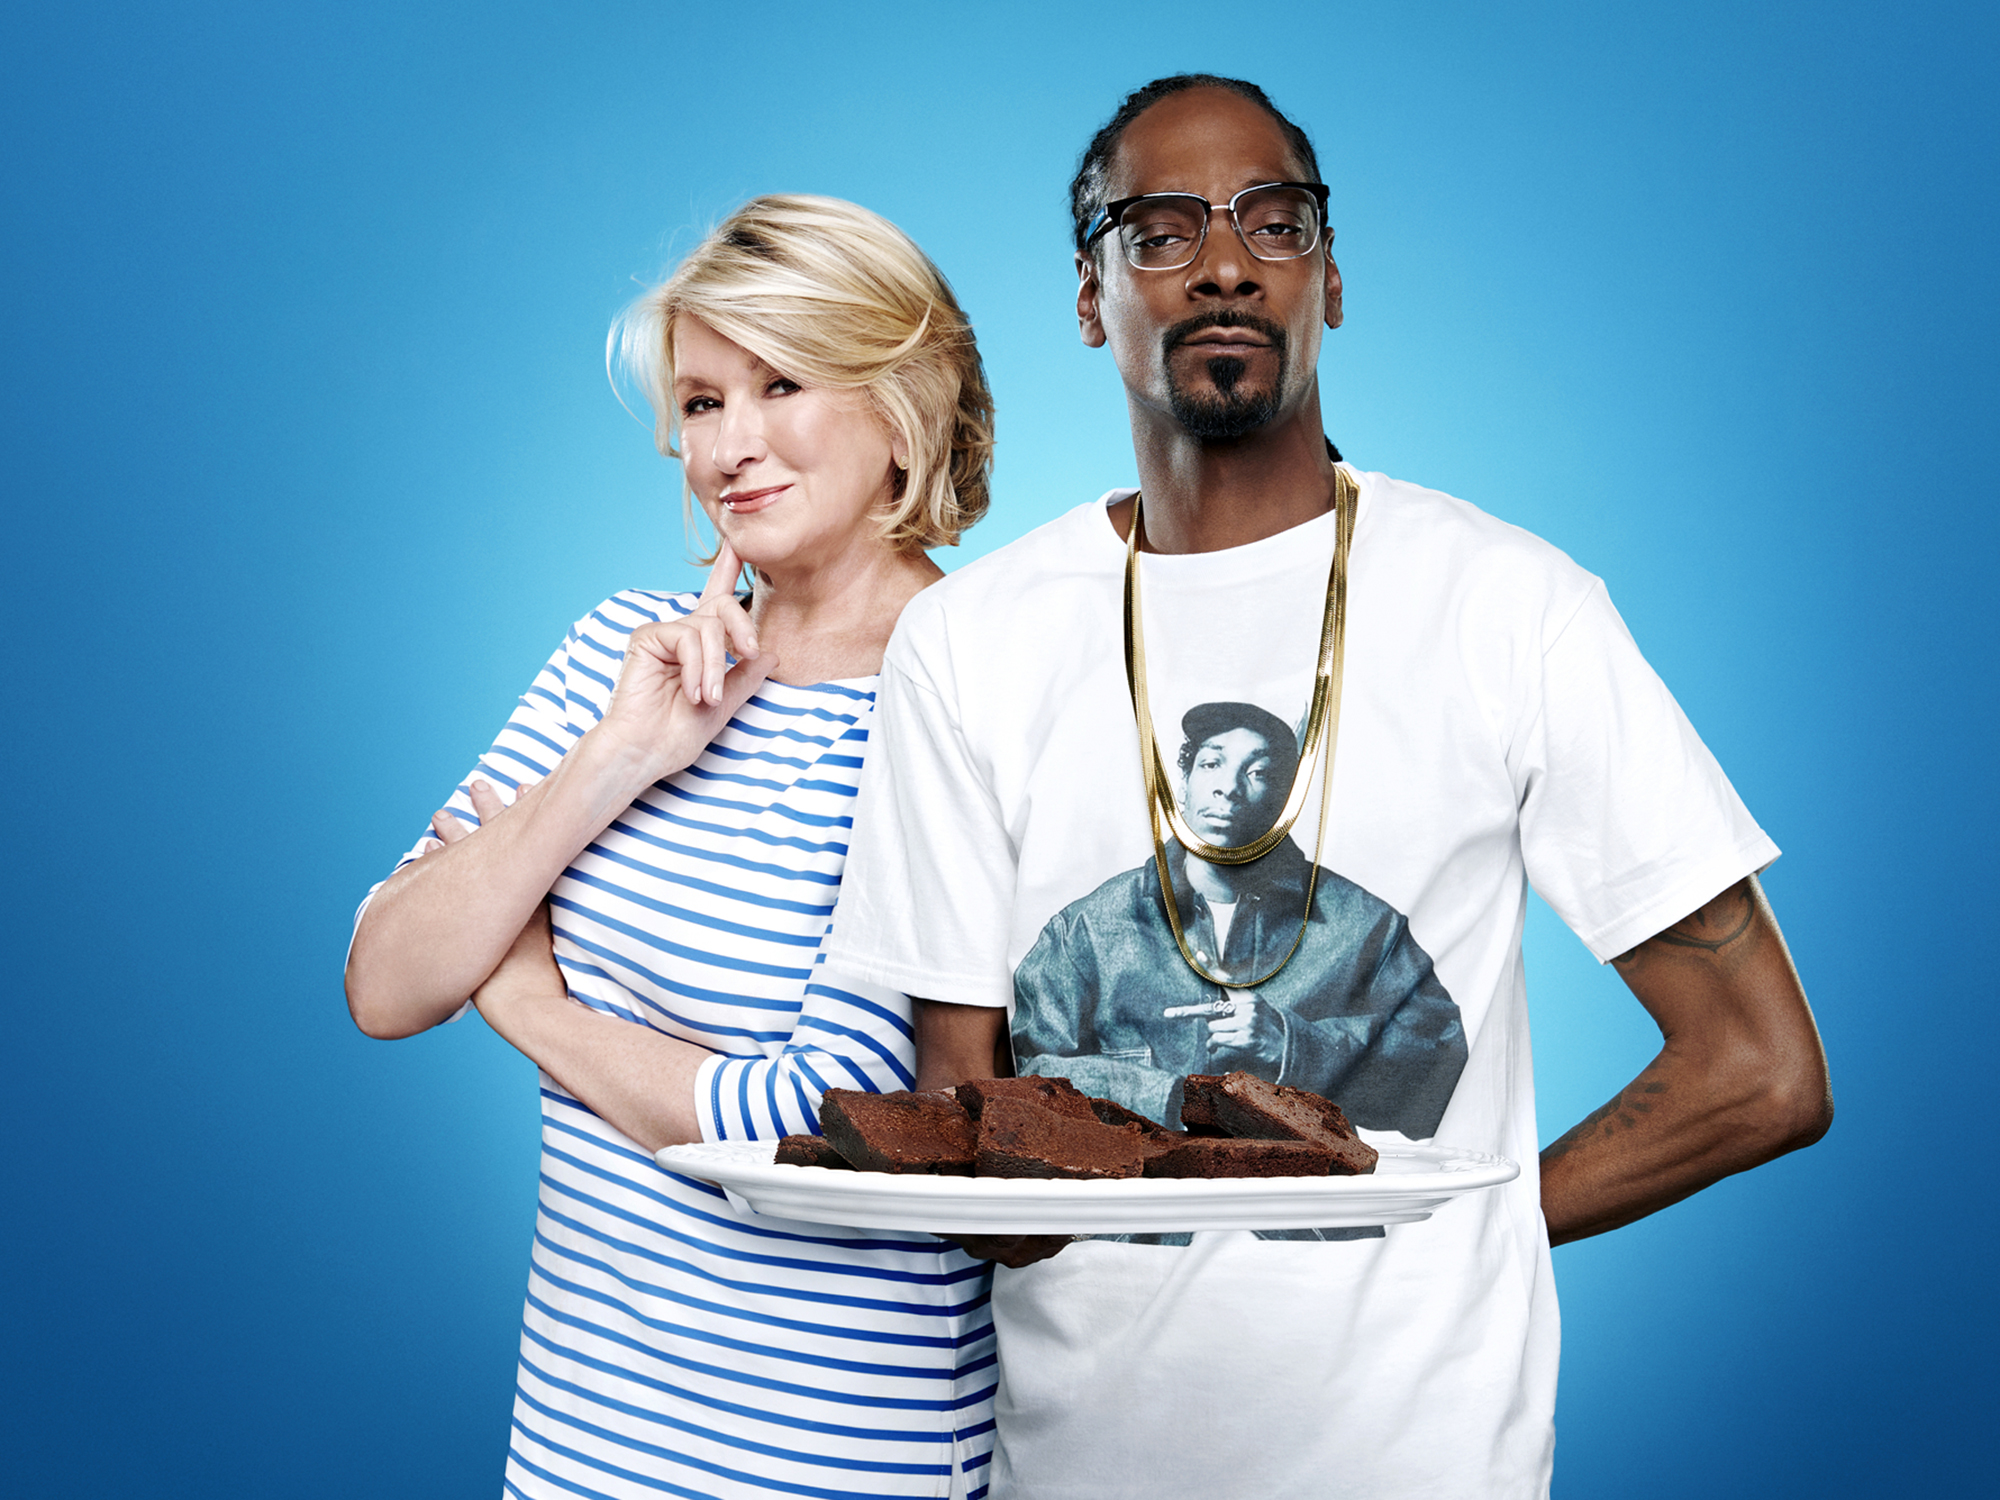 The Story Behind Snoop Dogg and Martha Stewart's Beautiful Friendship